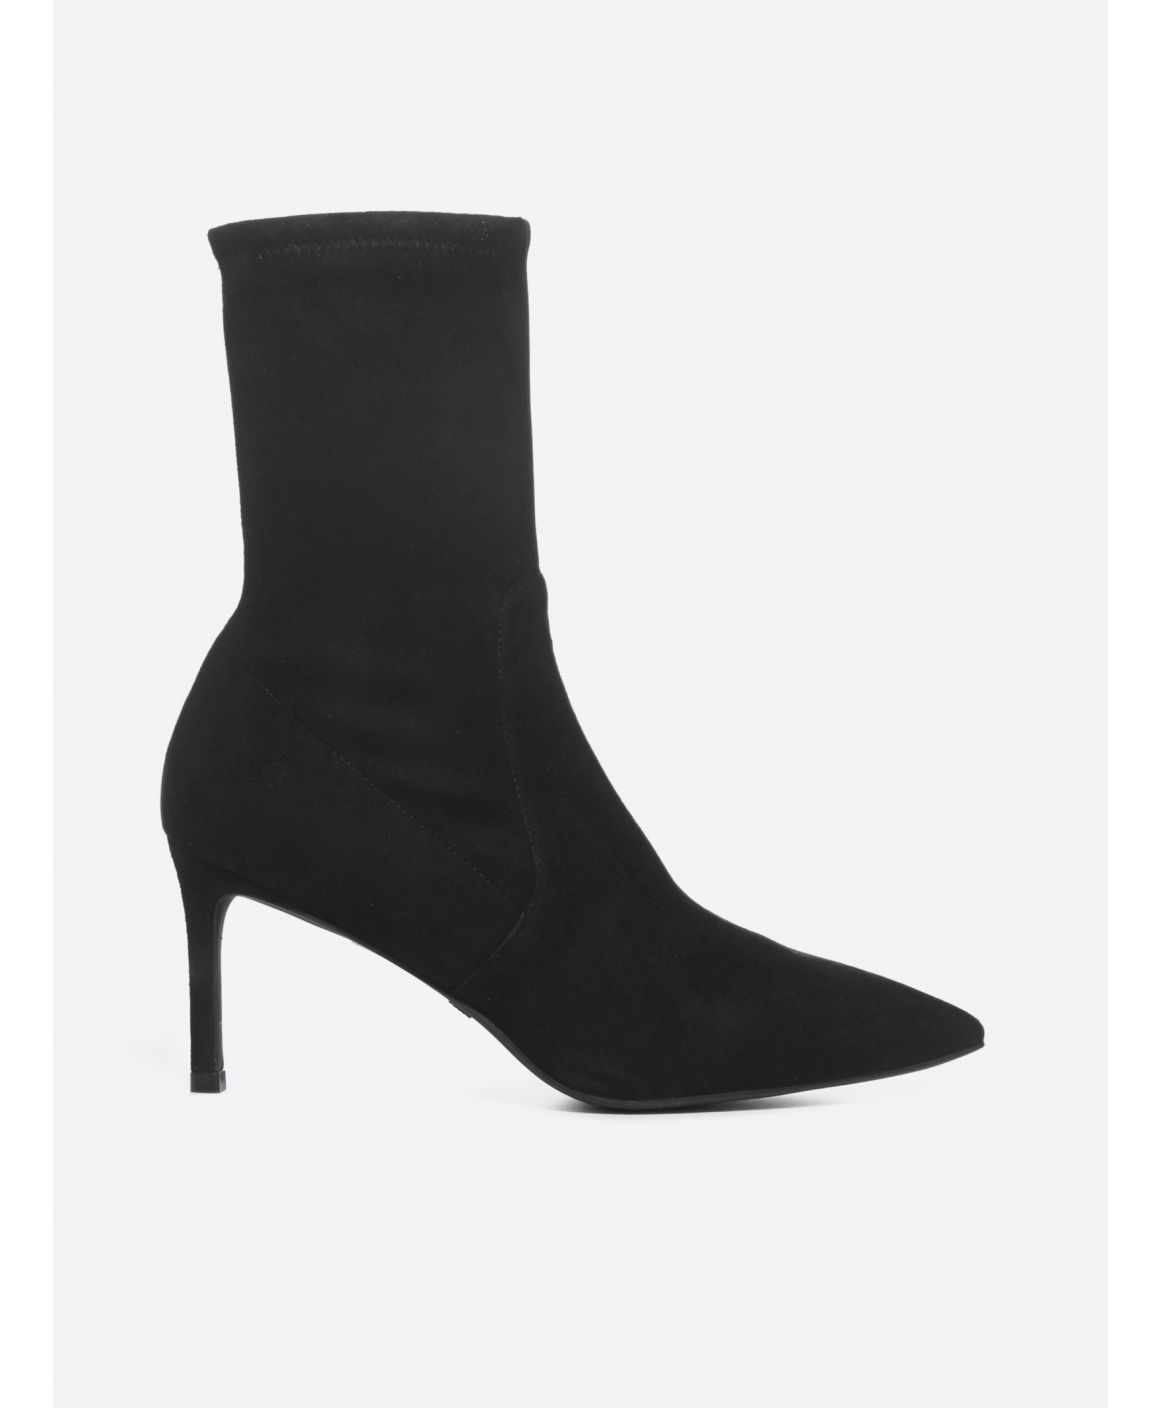 Wren 75 suede ankle boots